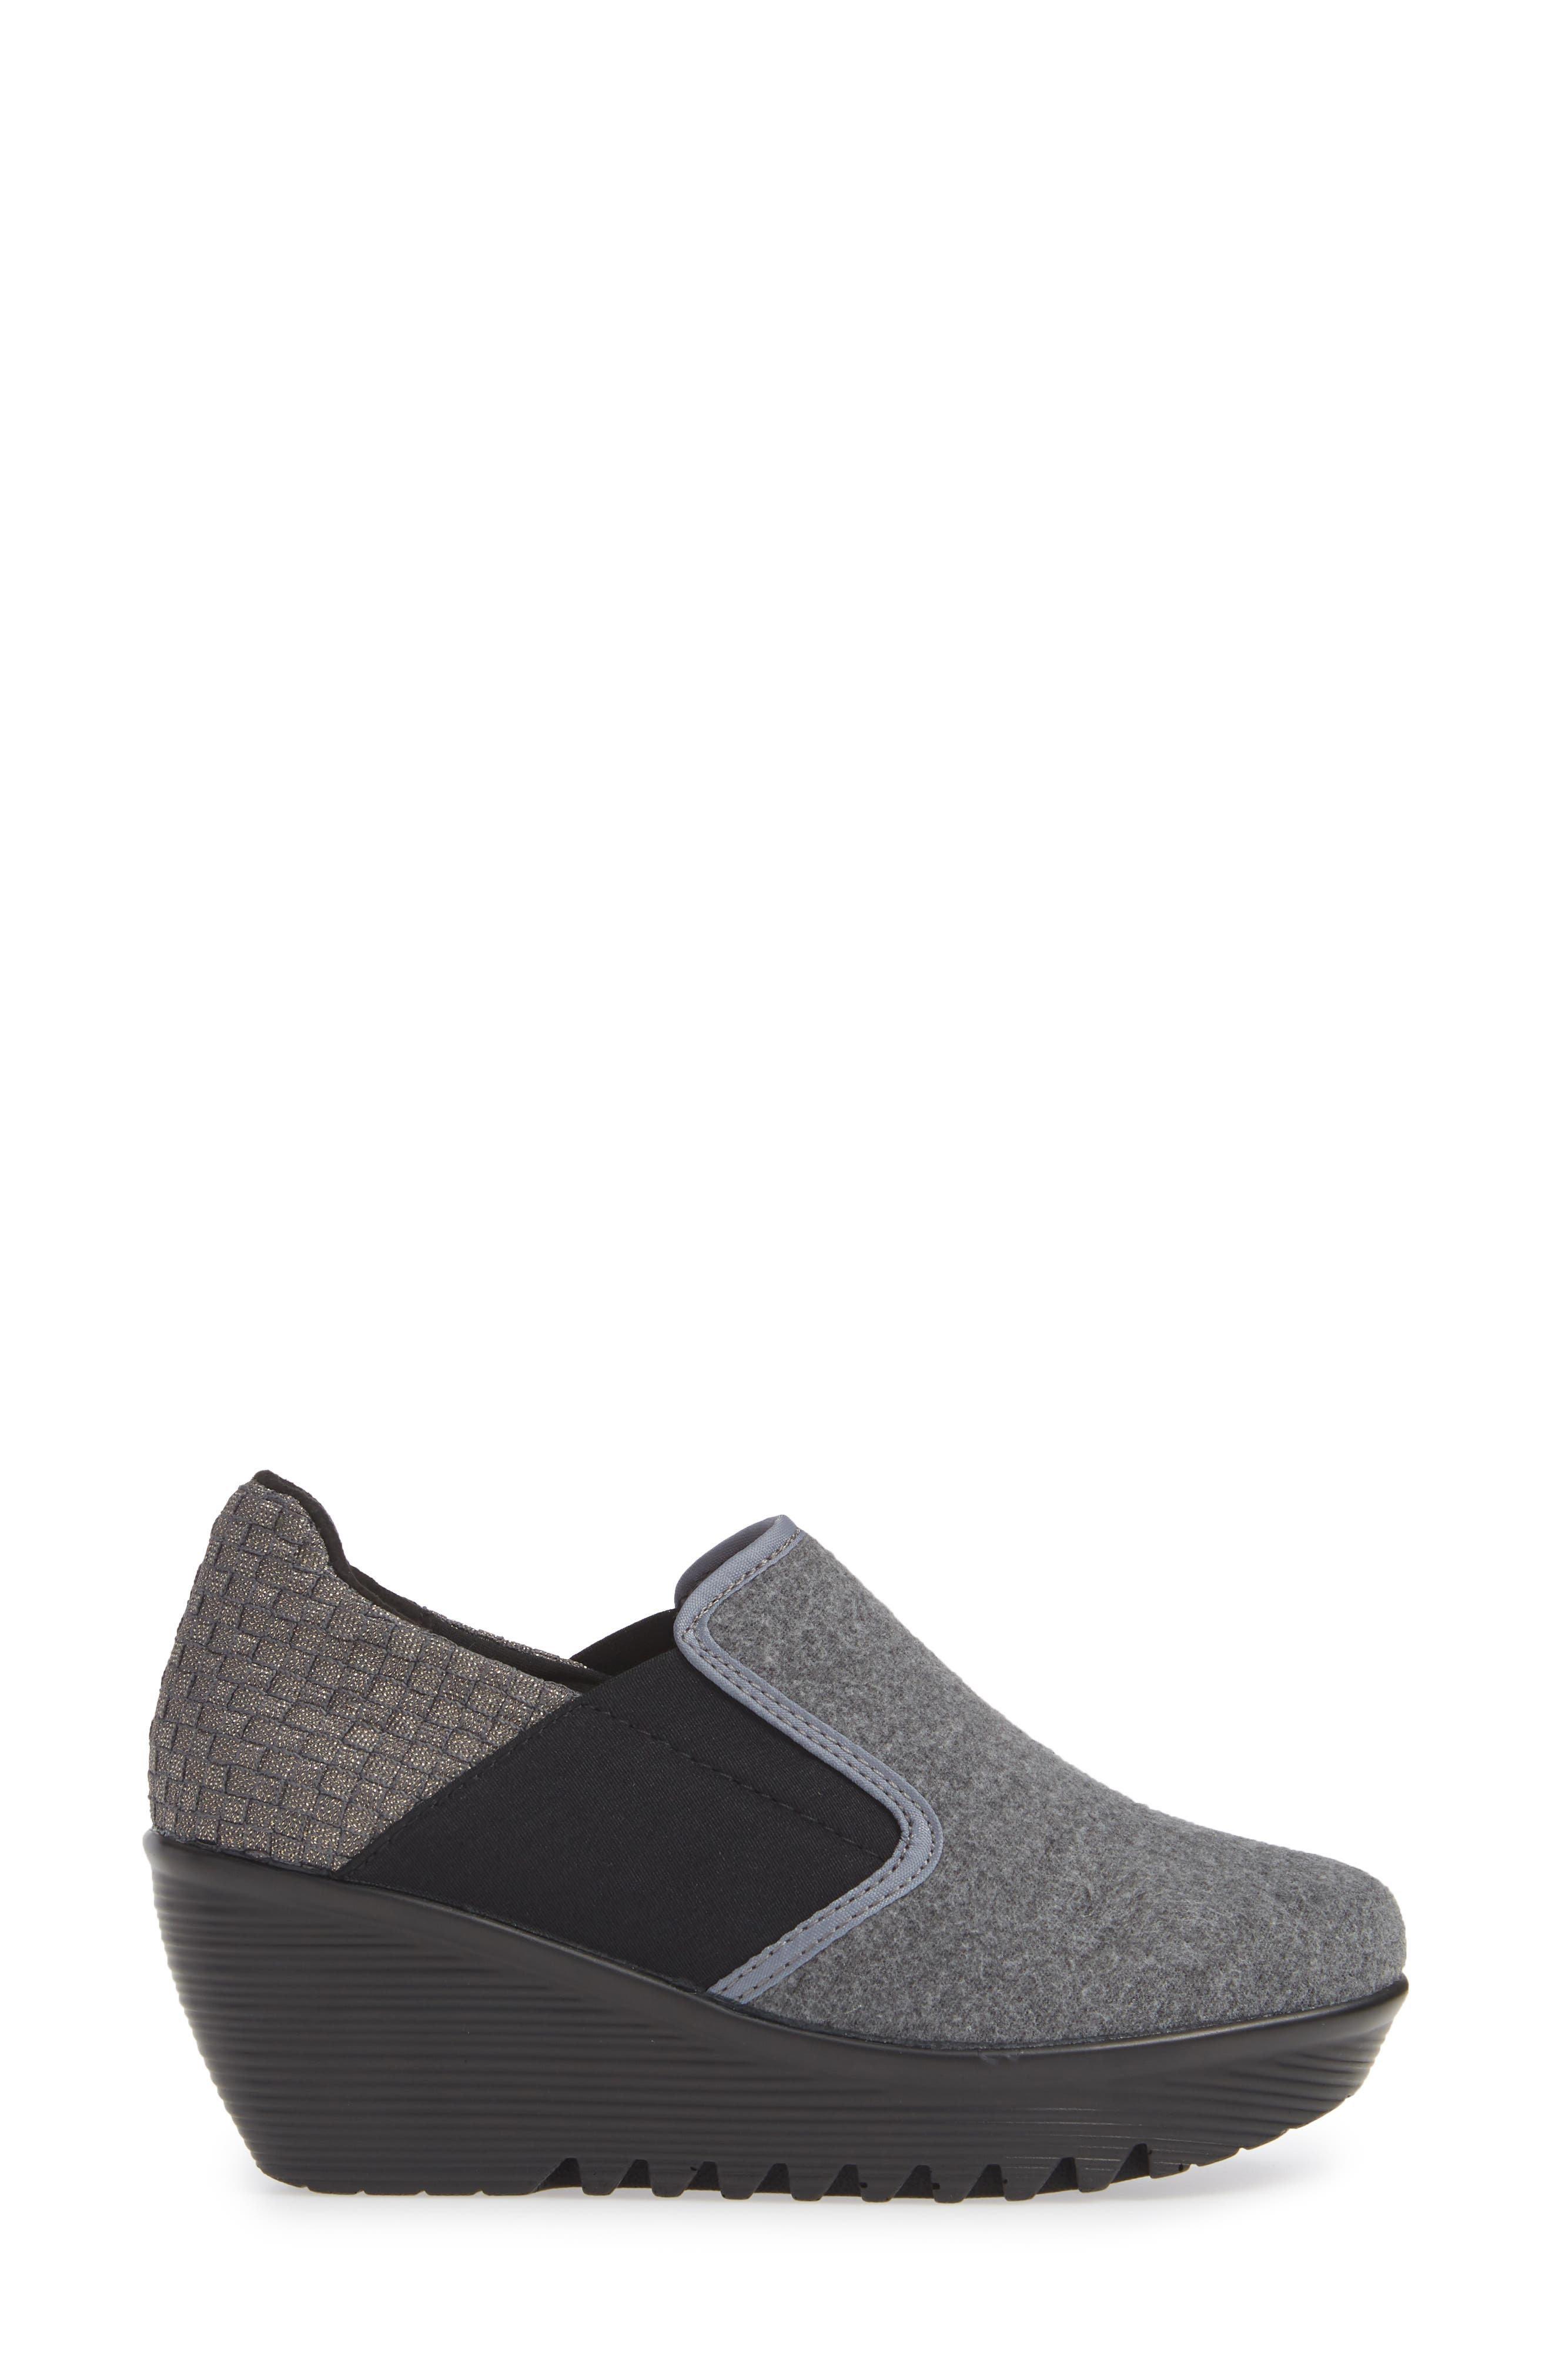 Bari Wedge,                             Alternate thumbnail 3, color,                             GREY SHIMMER LEATHER